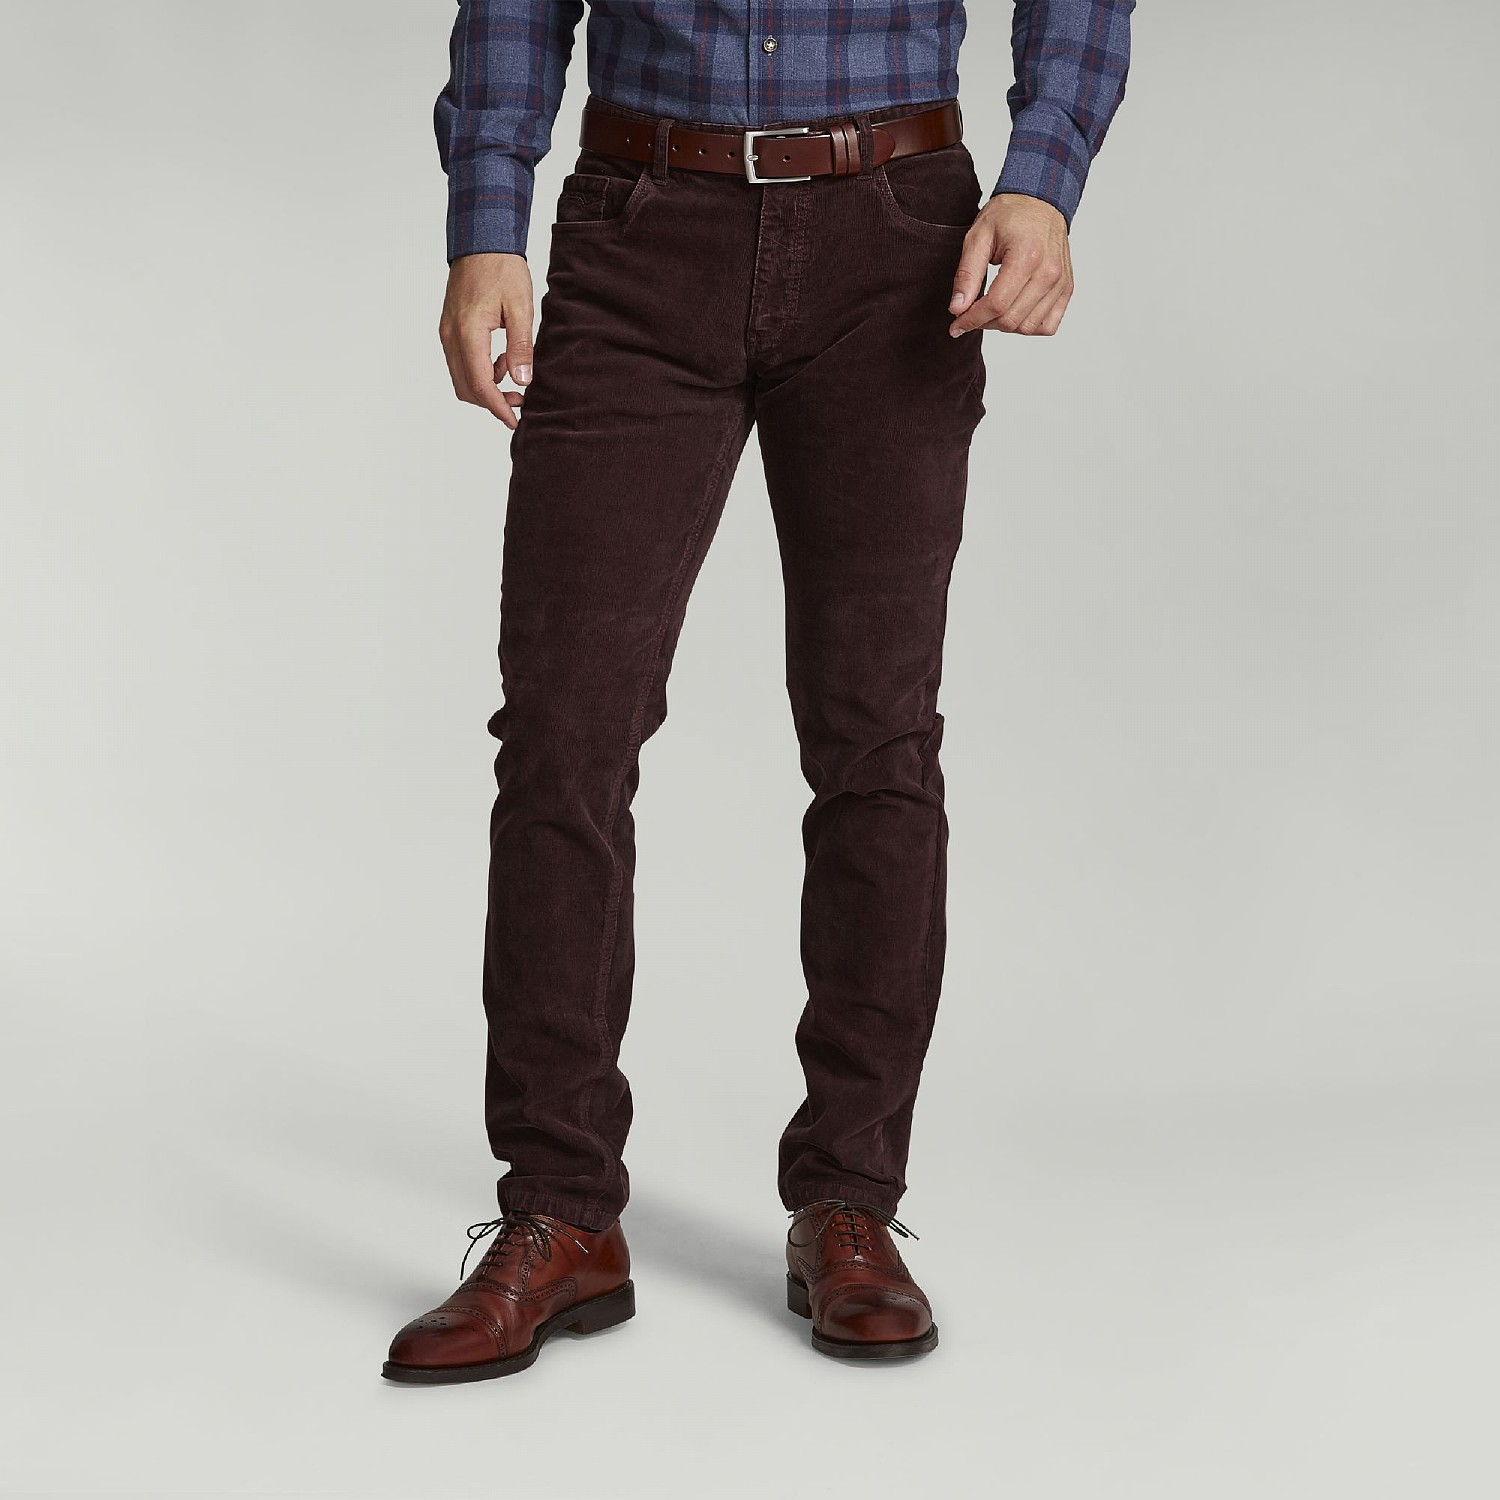 Burgundy Cord Trousers